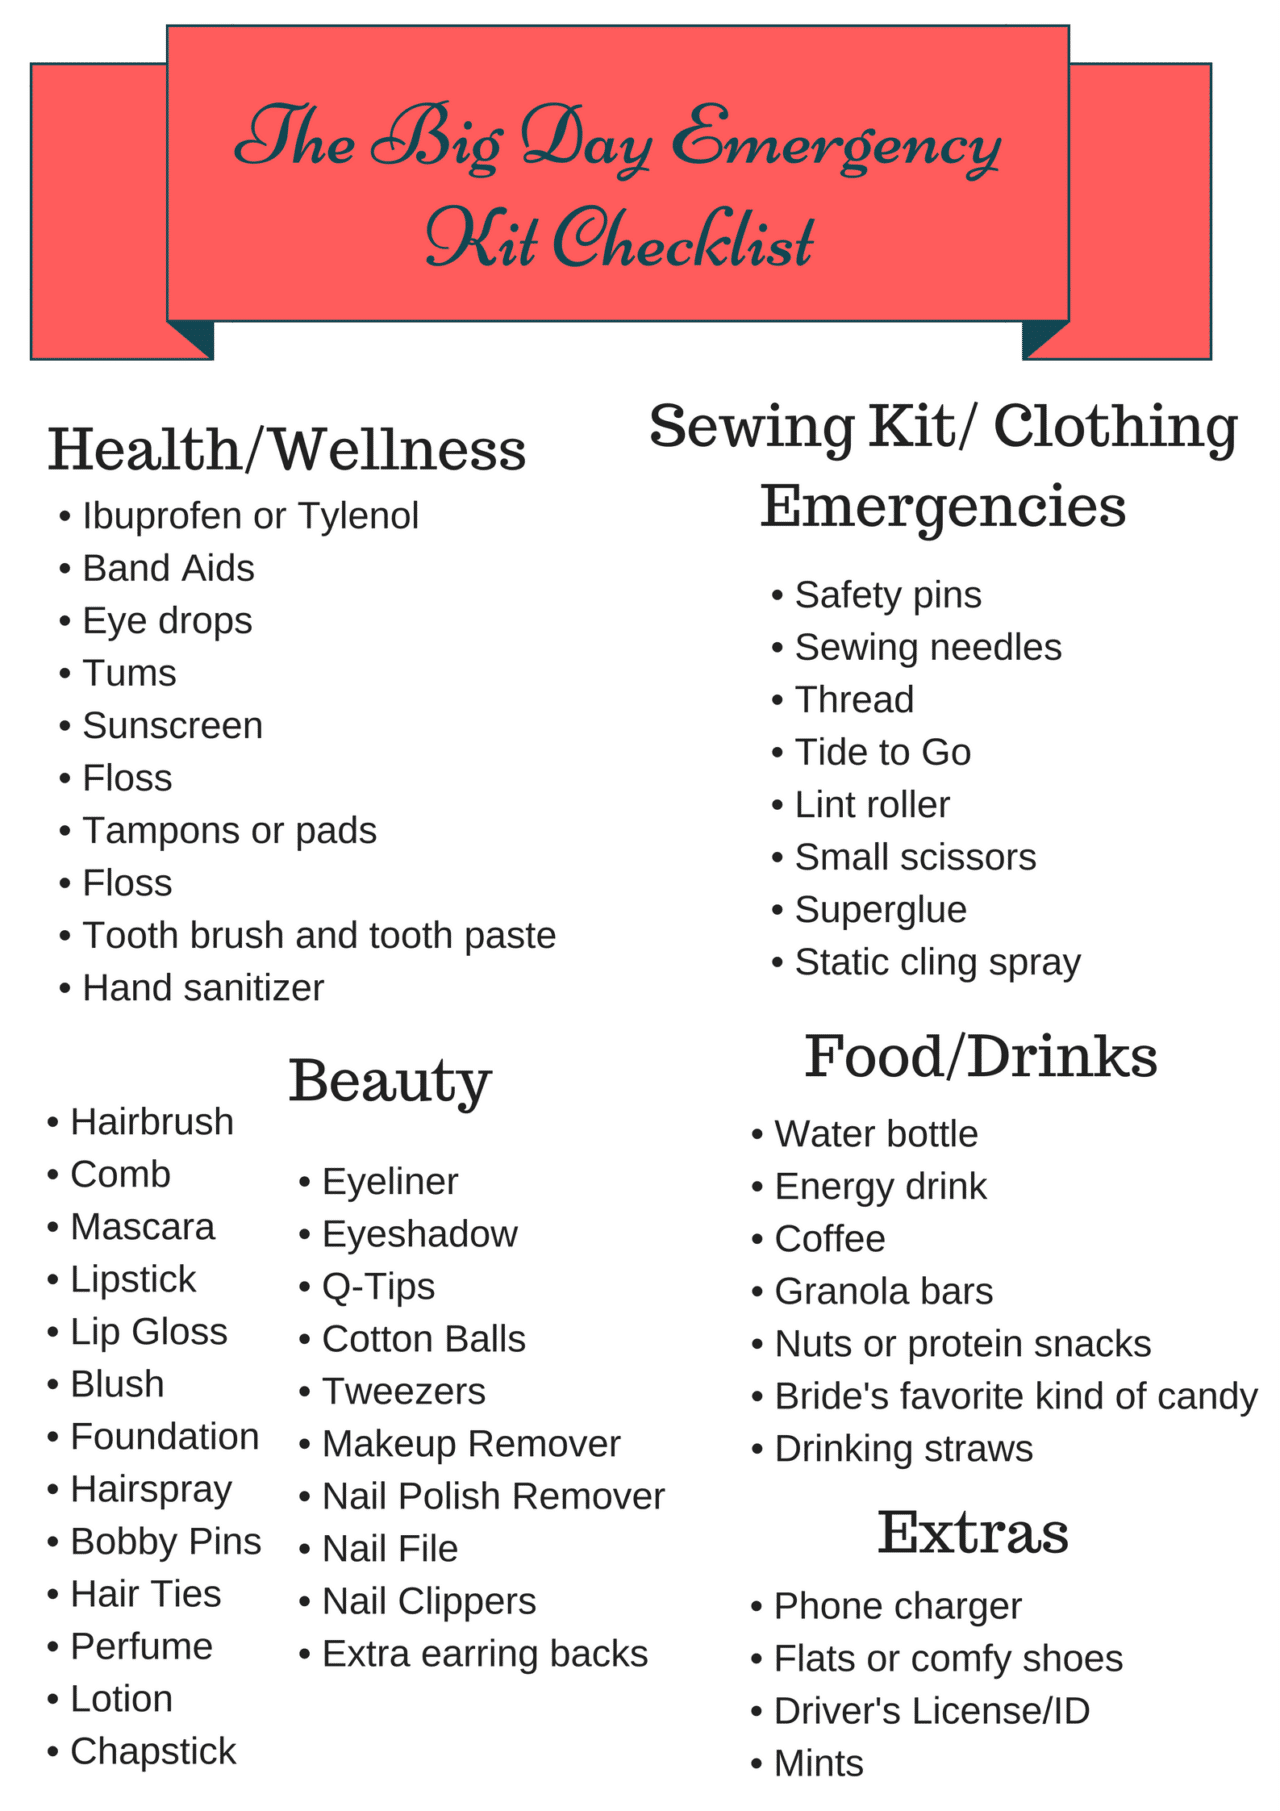 The Big Day Emergency Kit Checklist